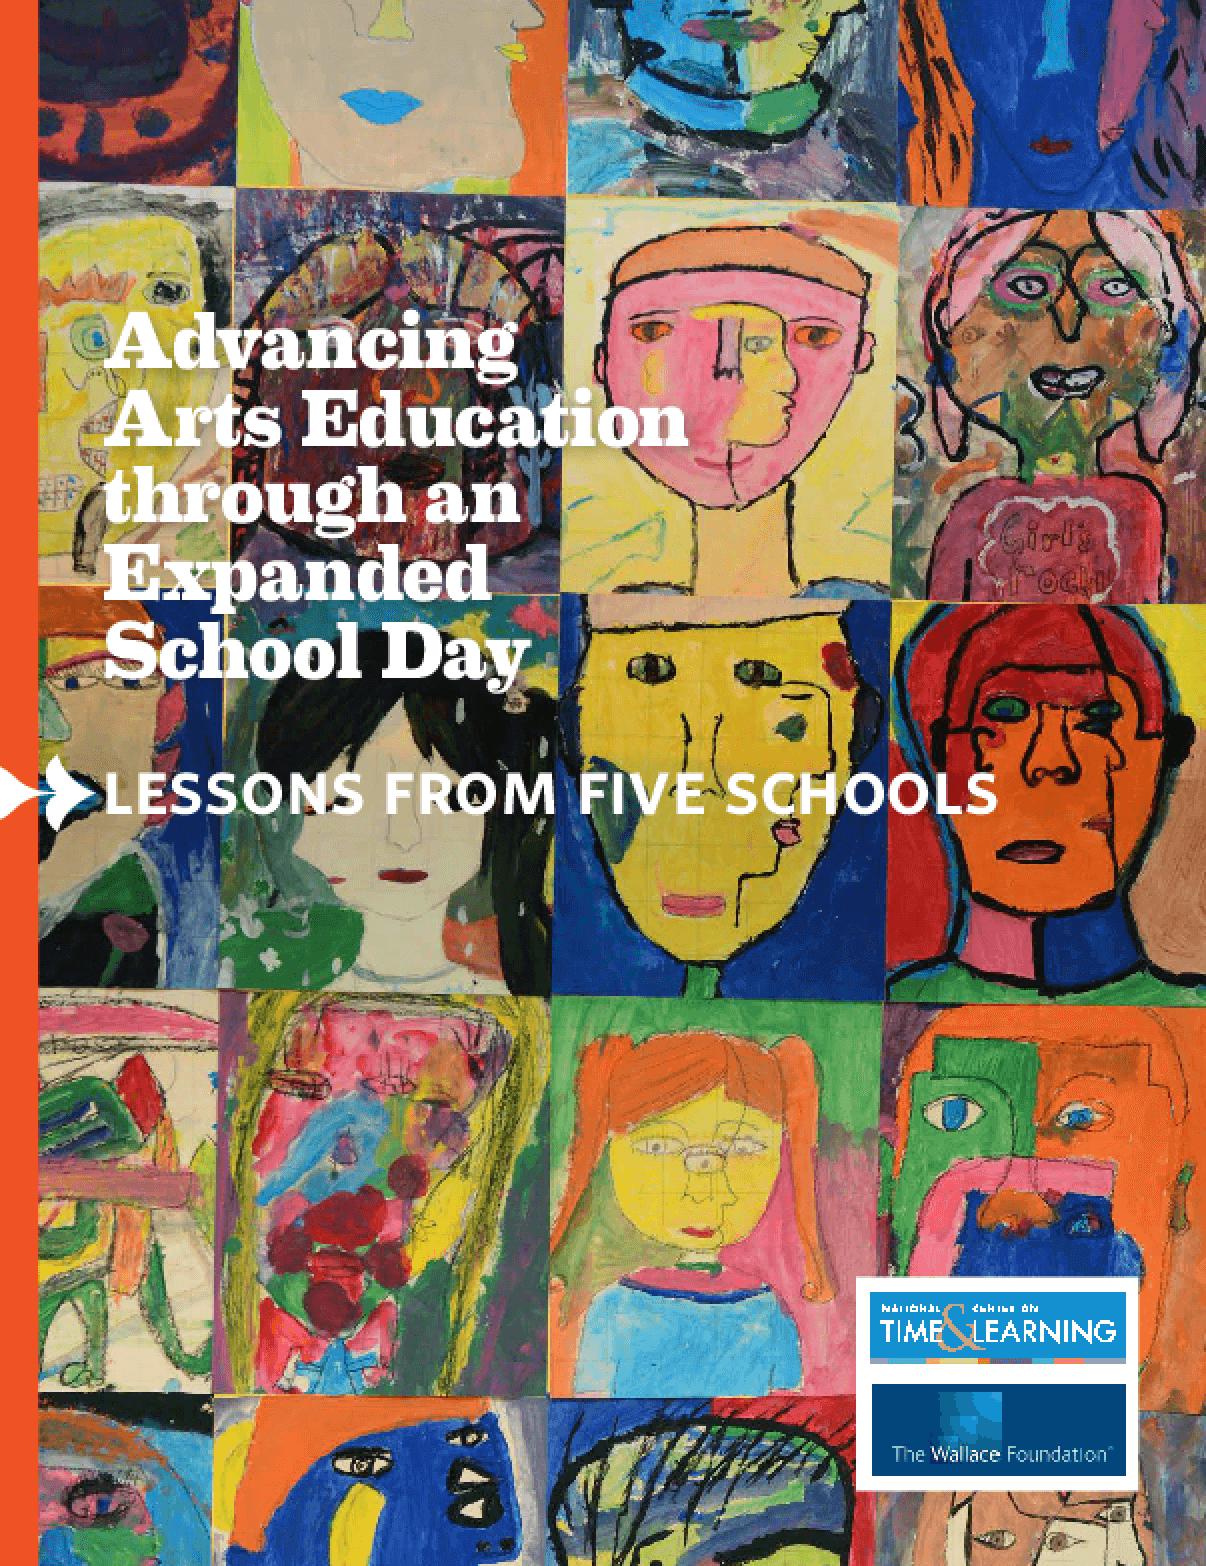 Advancing Arts Education through an Expanded School Day: Lessons from Five Schools